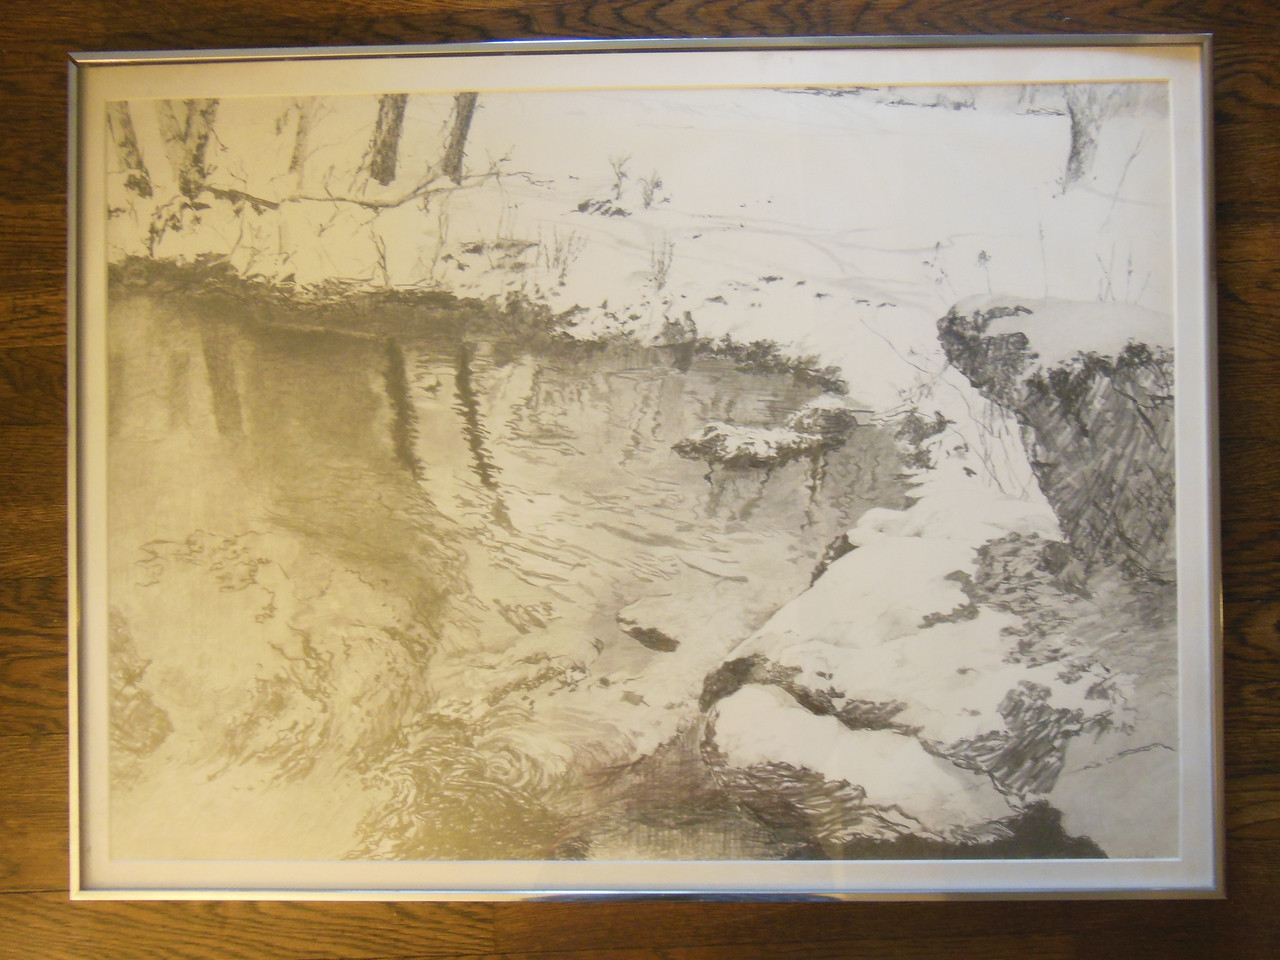 Carol Kardon. Snowy Stream Scene. Framed drawing